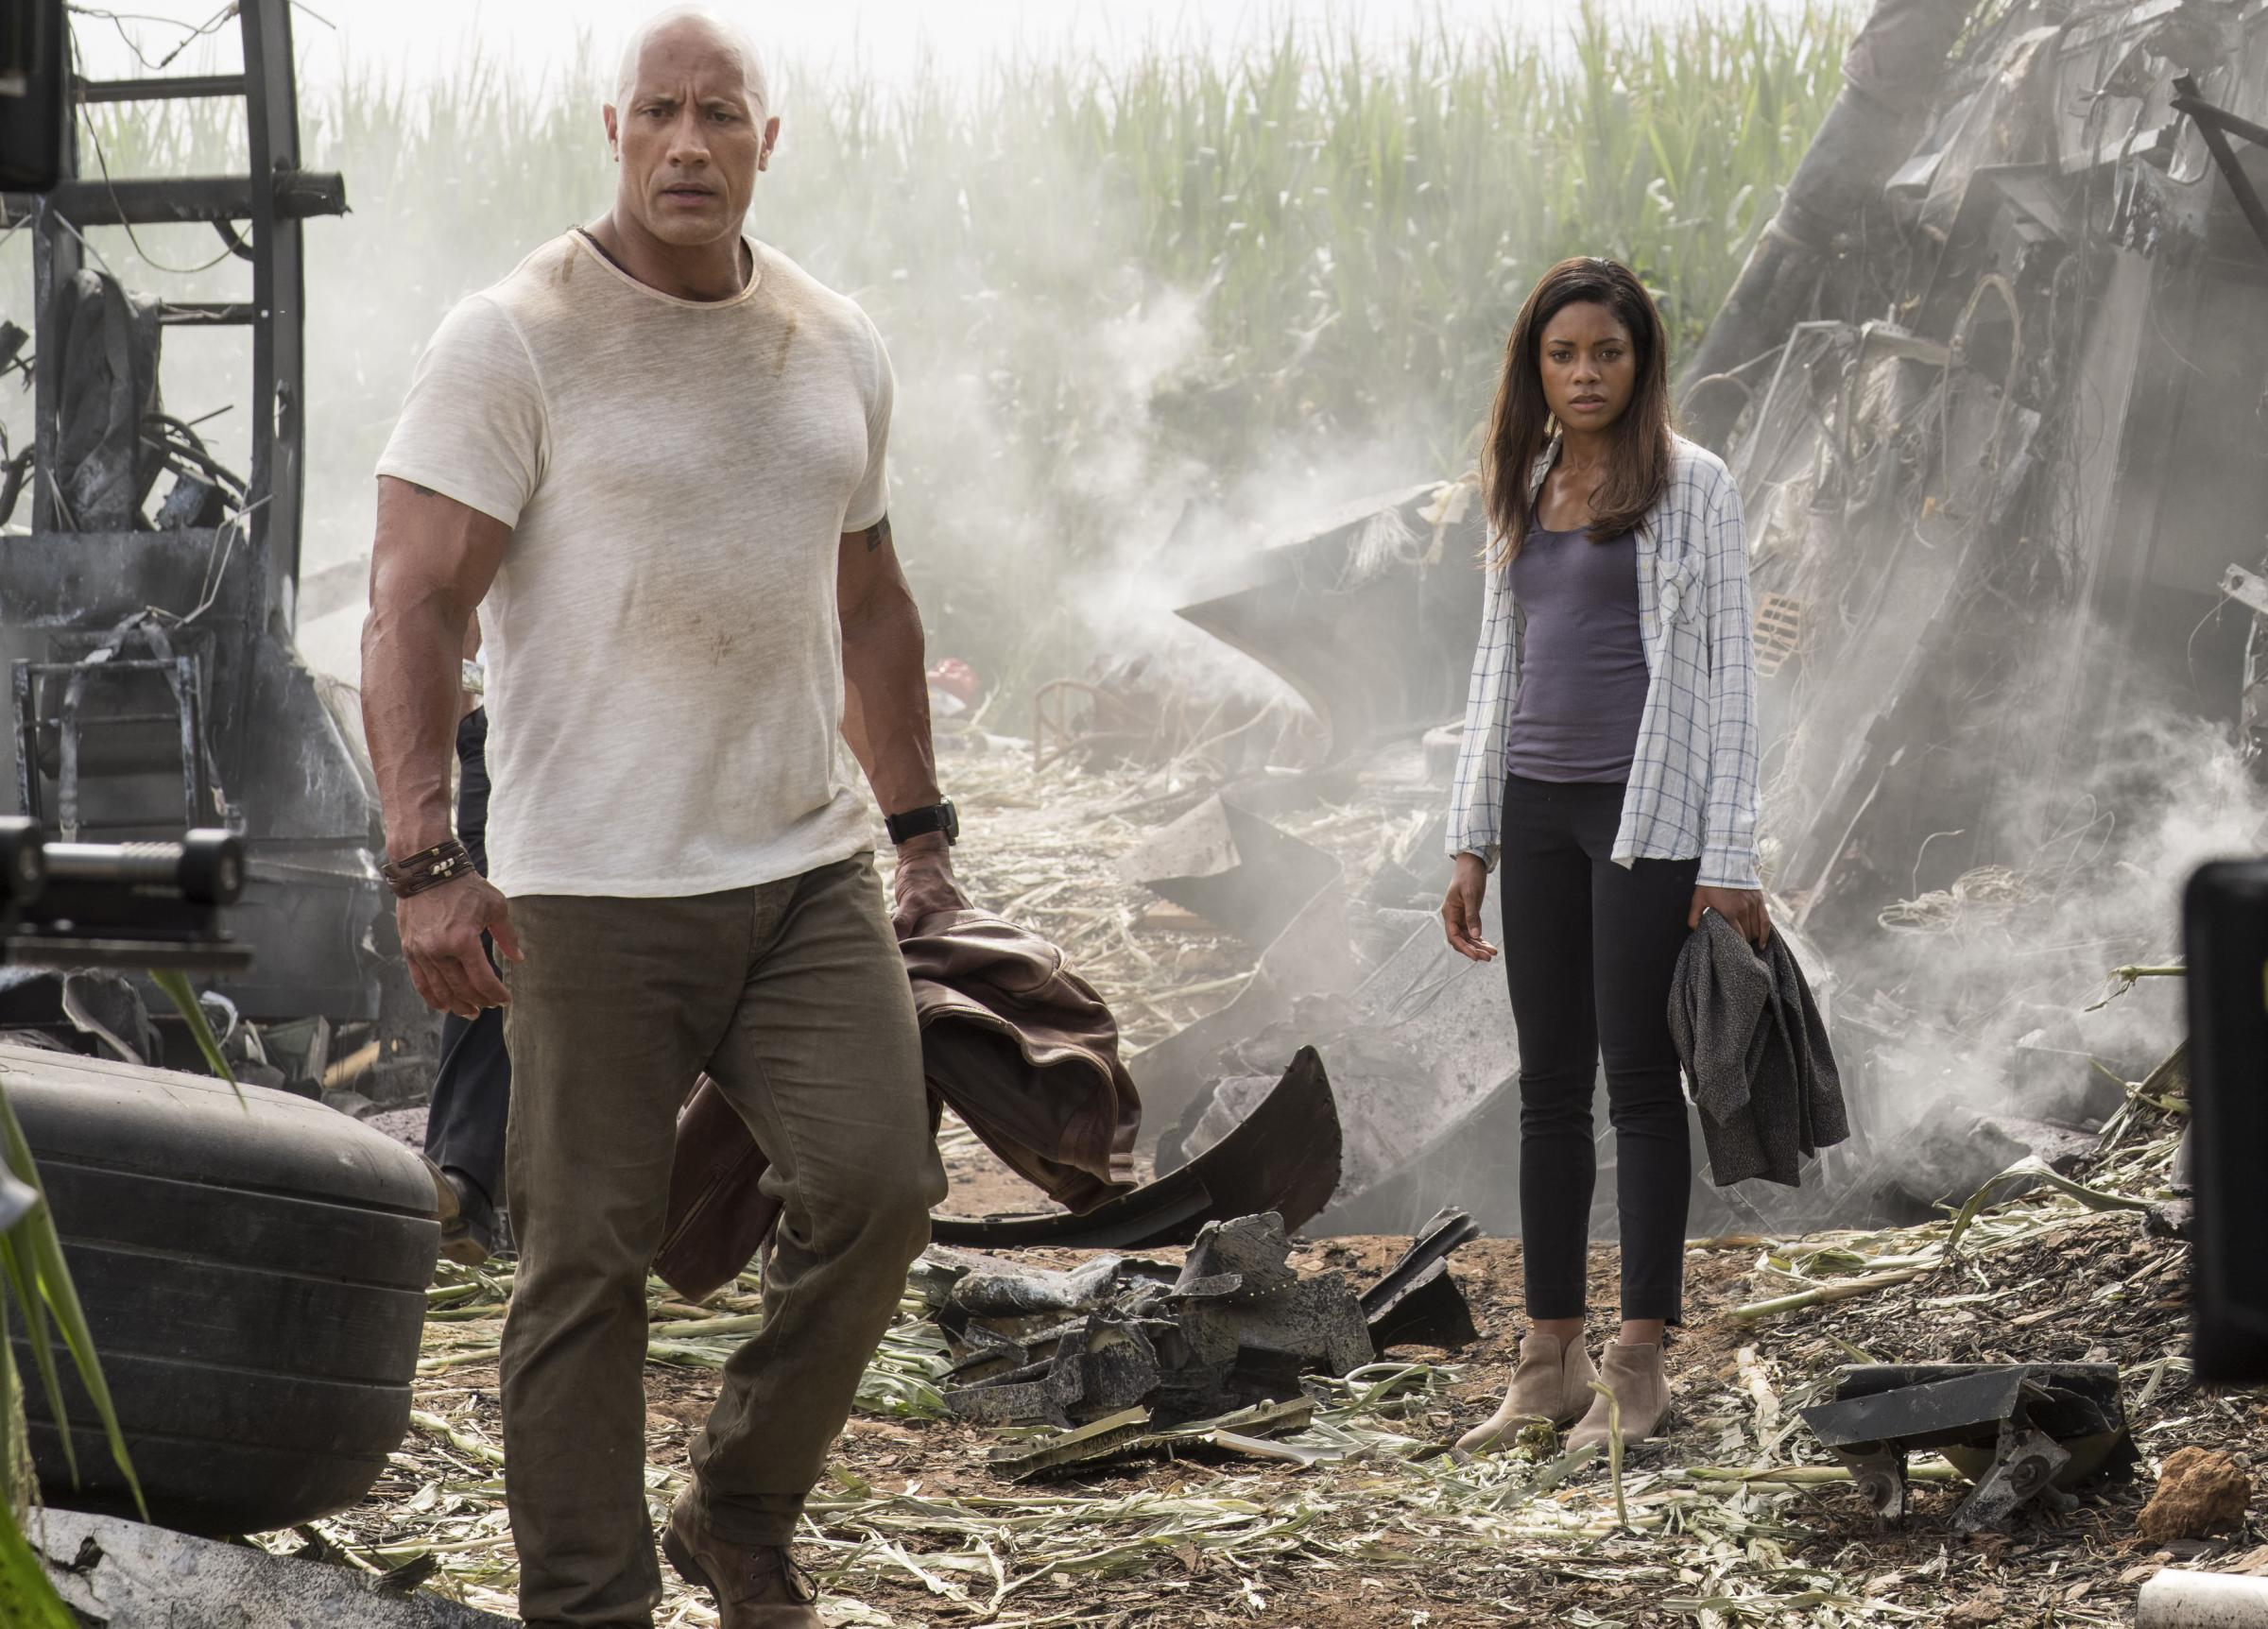 Dwayne Johnson and Naomie Harris in Rampage